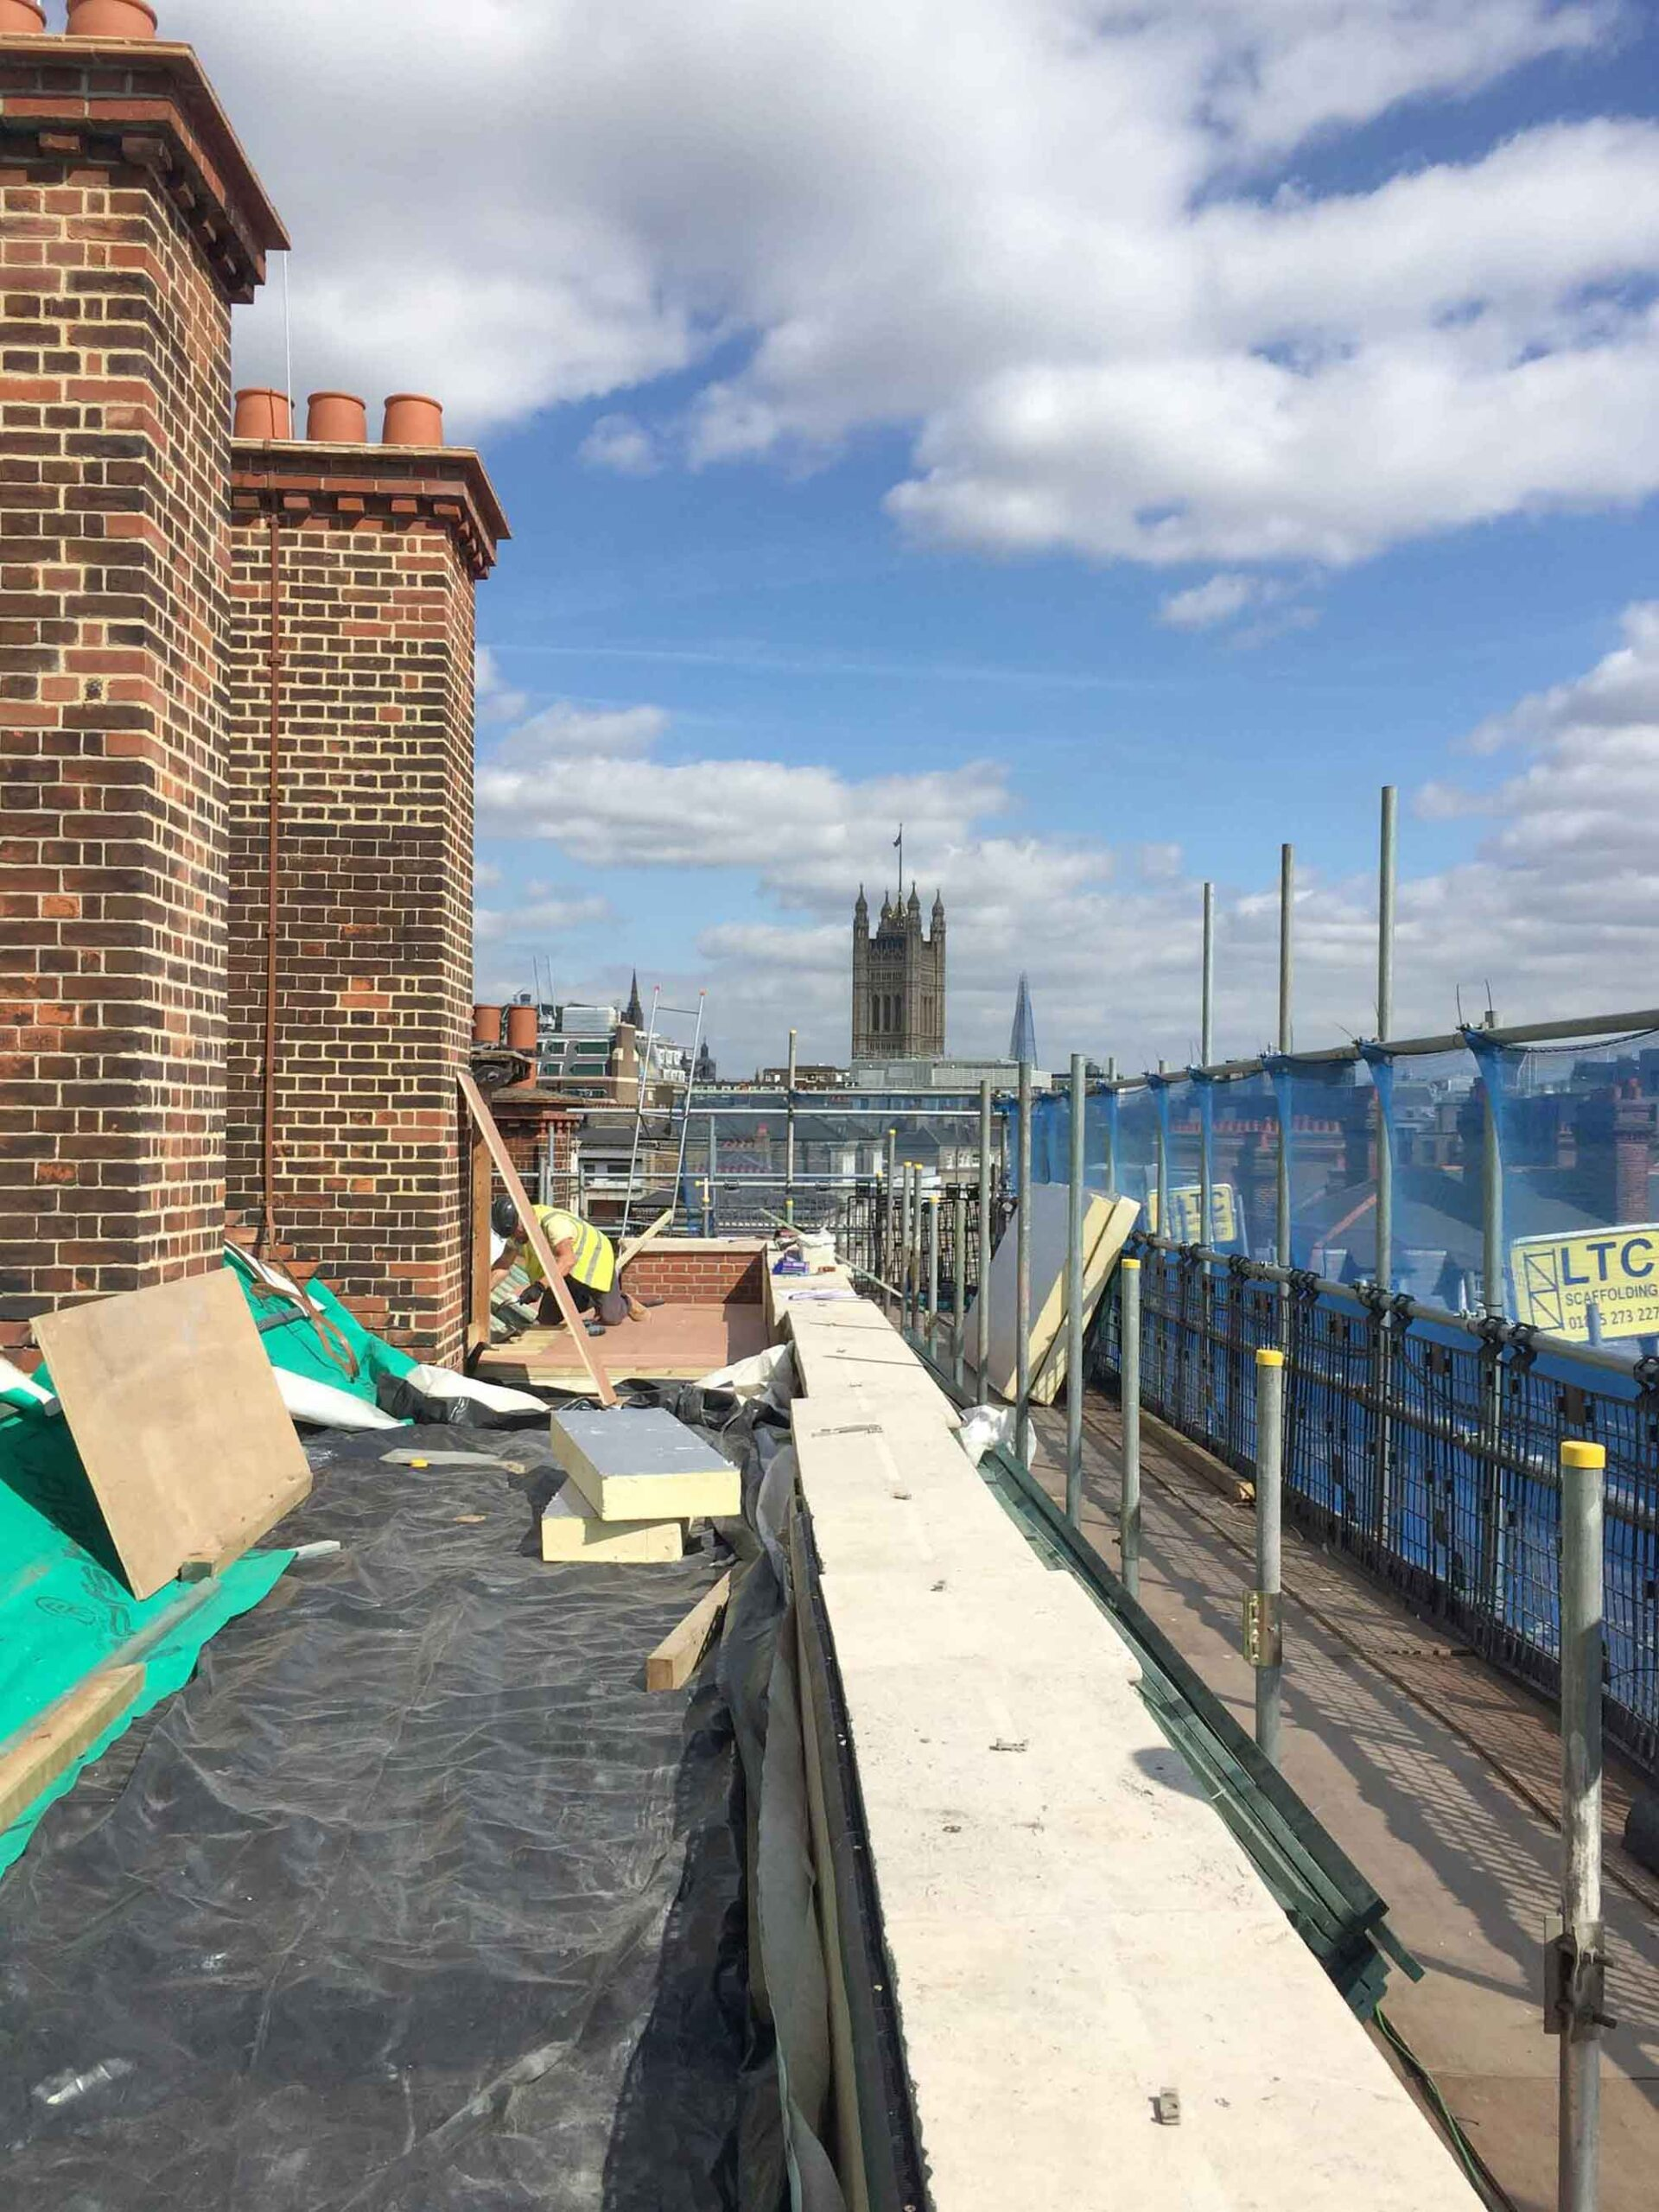 westminster-fire-station-openstudio-architects-view-from-roof